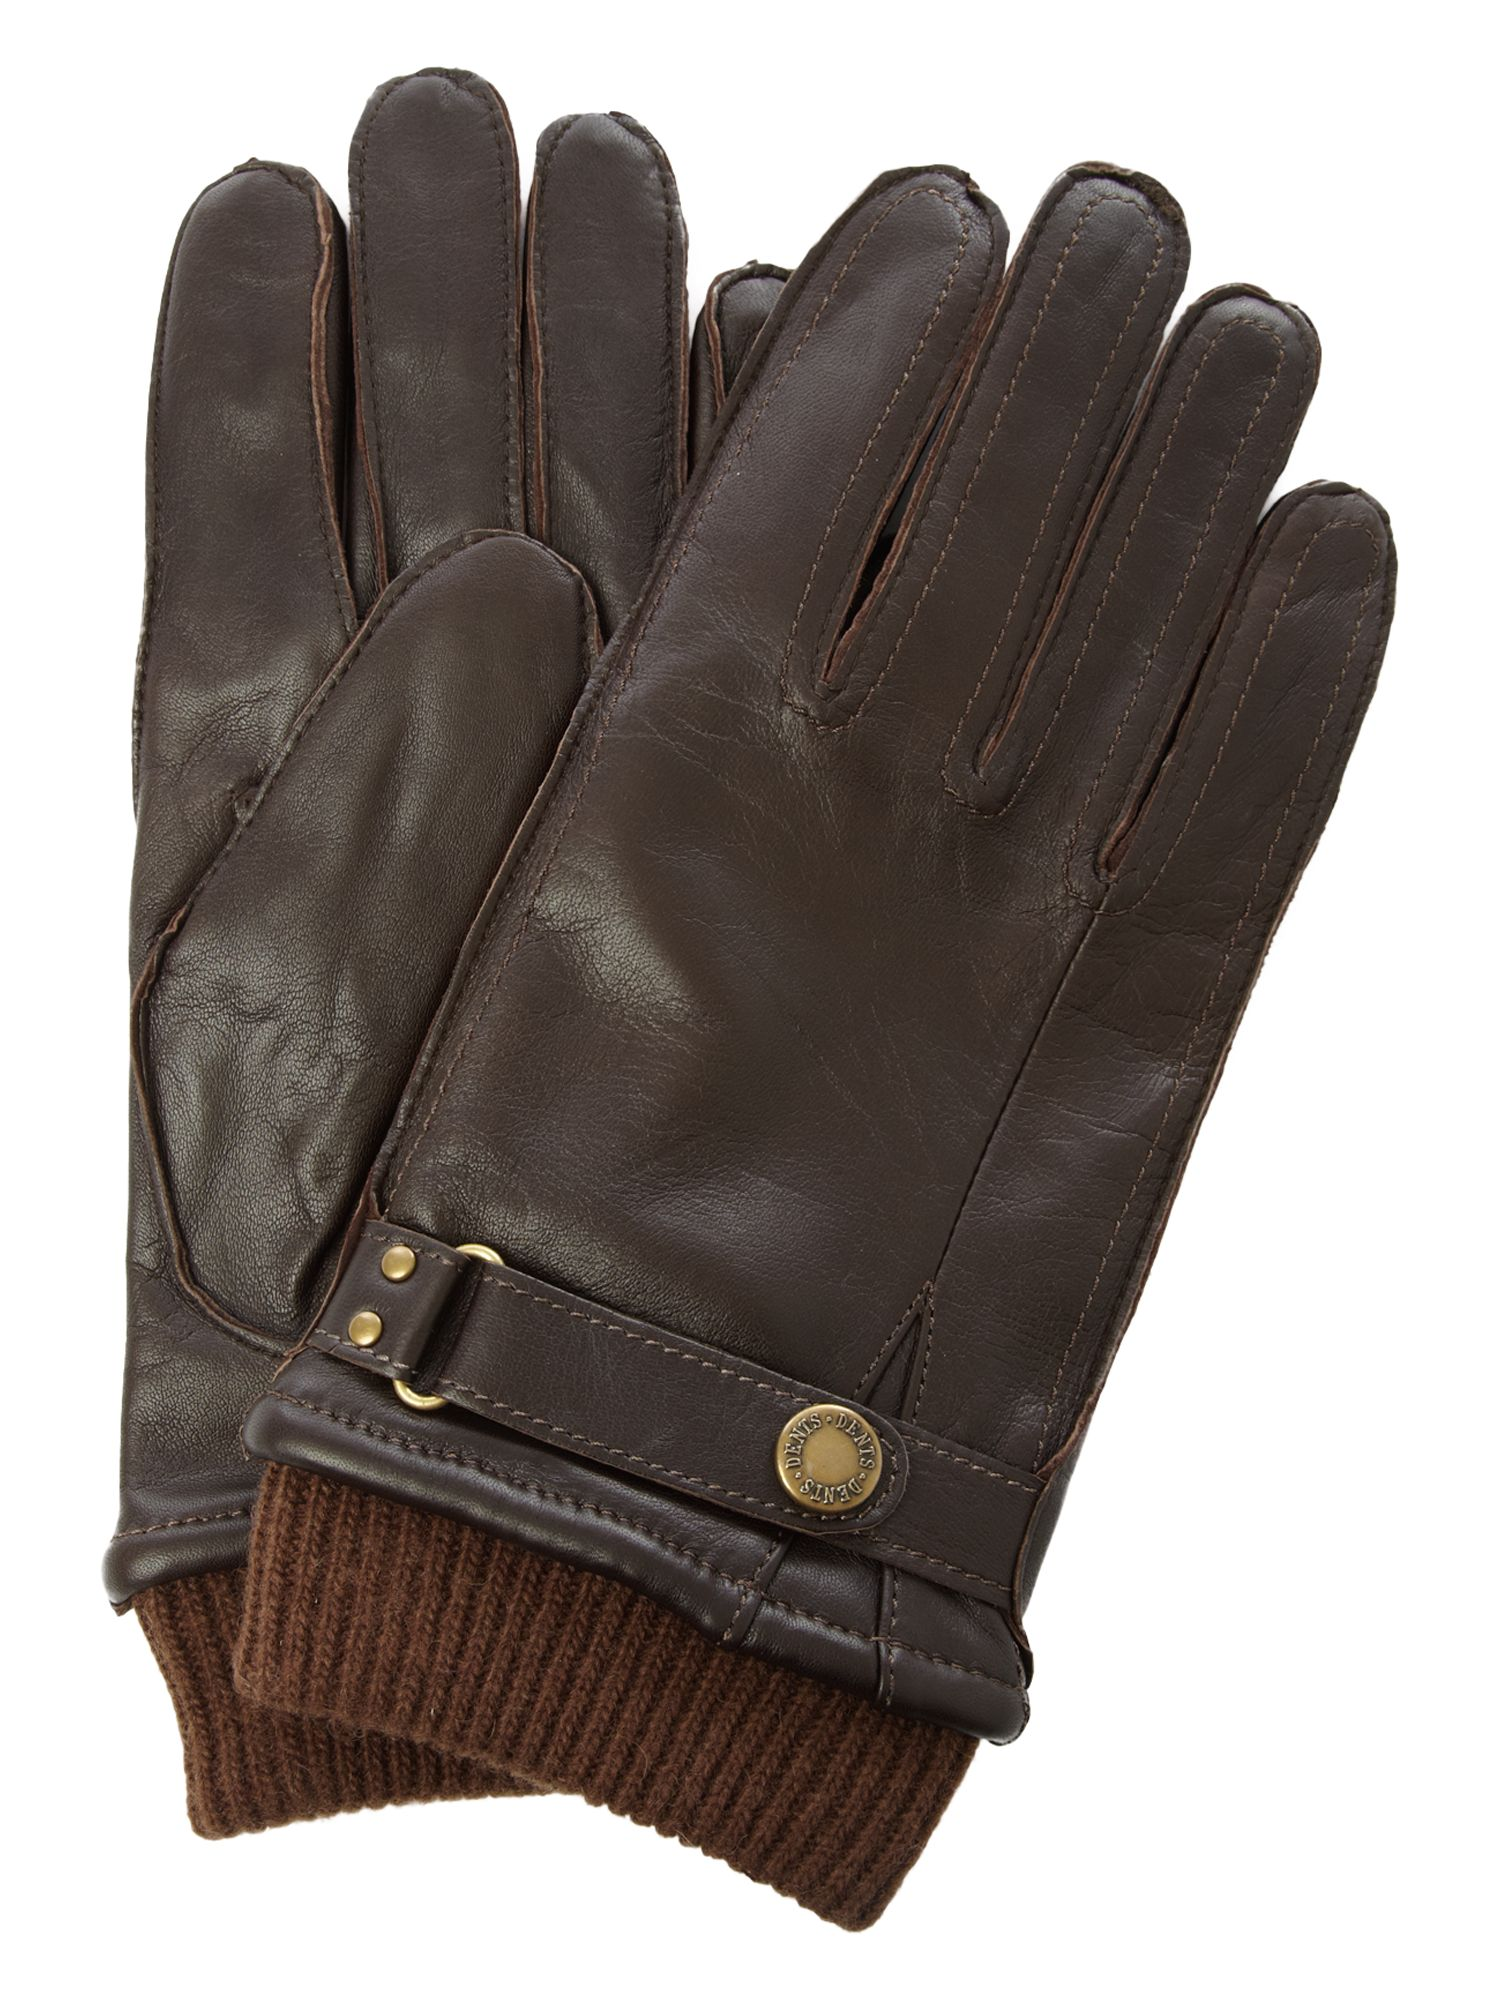 Mens leather gloves dents - Gallery Previously Sold At House Of Fraser Men S Leather Gloves